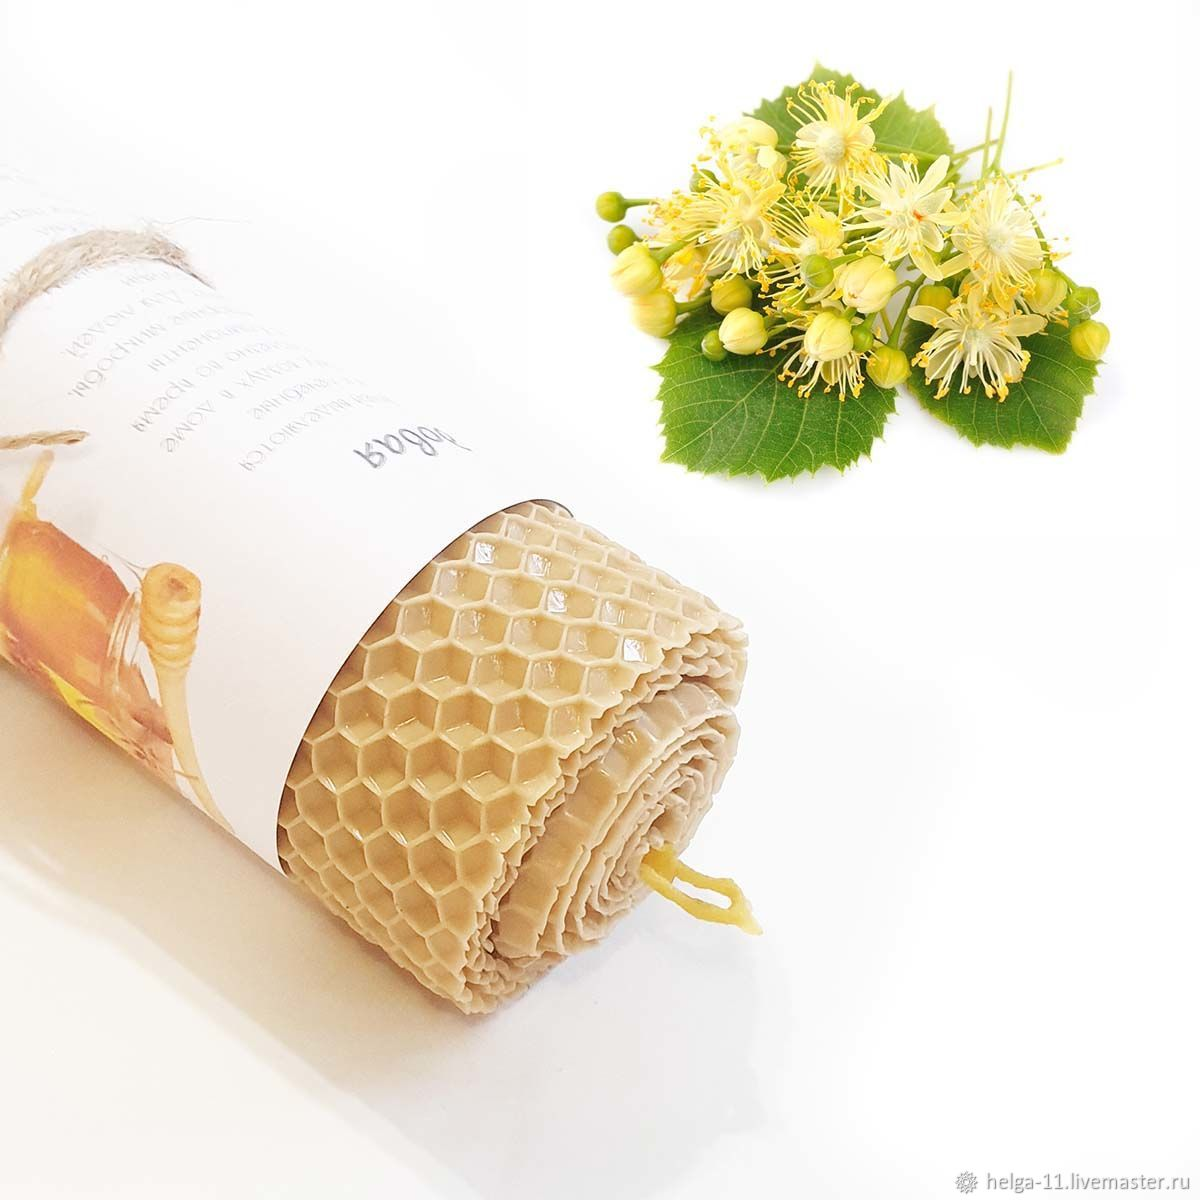 Honey - Cream candle with lime 13h4,7,  cm, Candles, St. Petersburg,  Фото №1